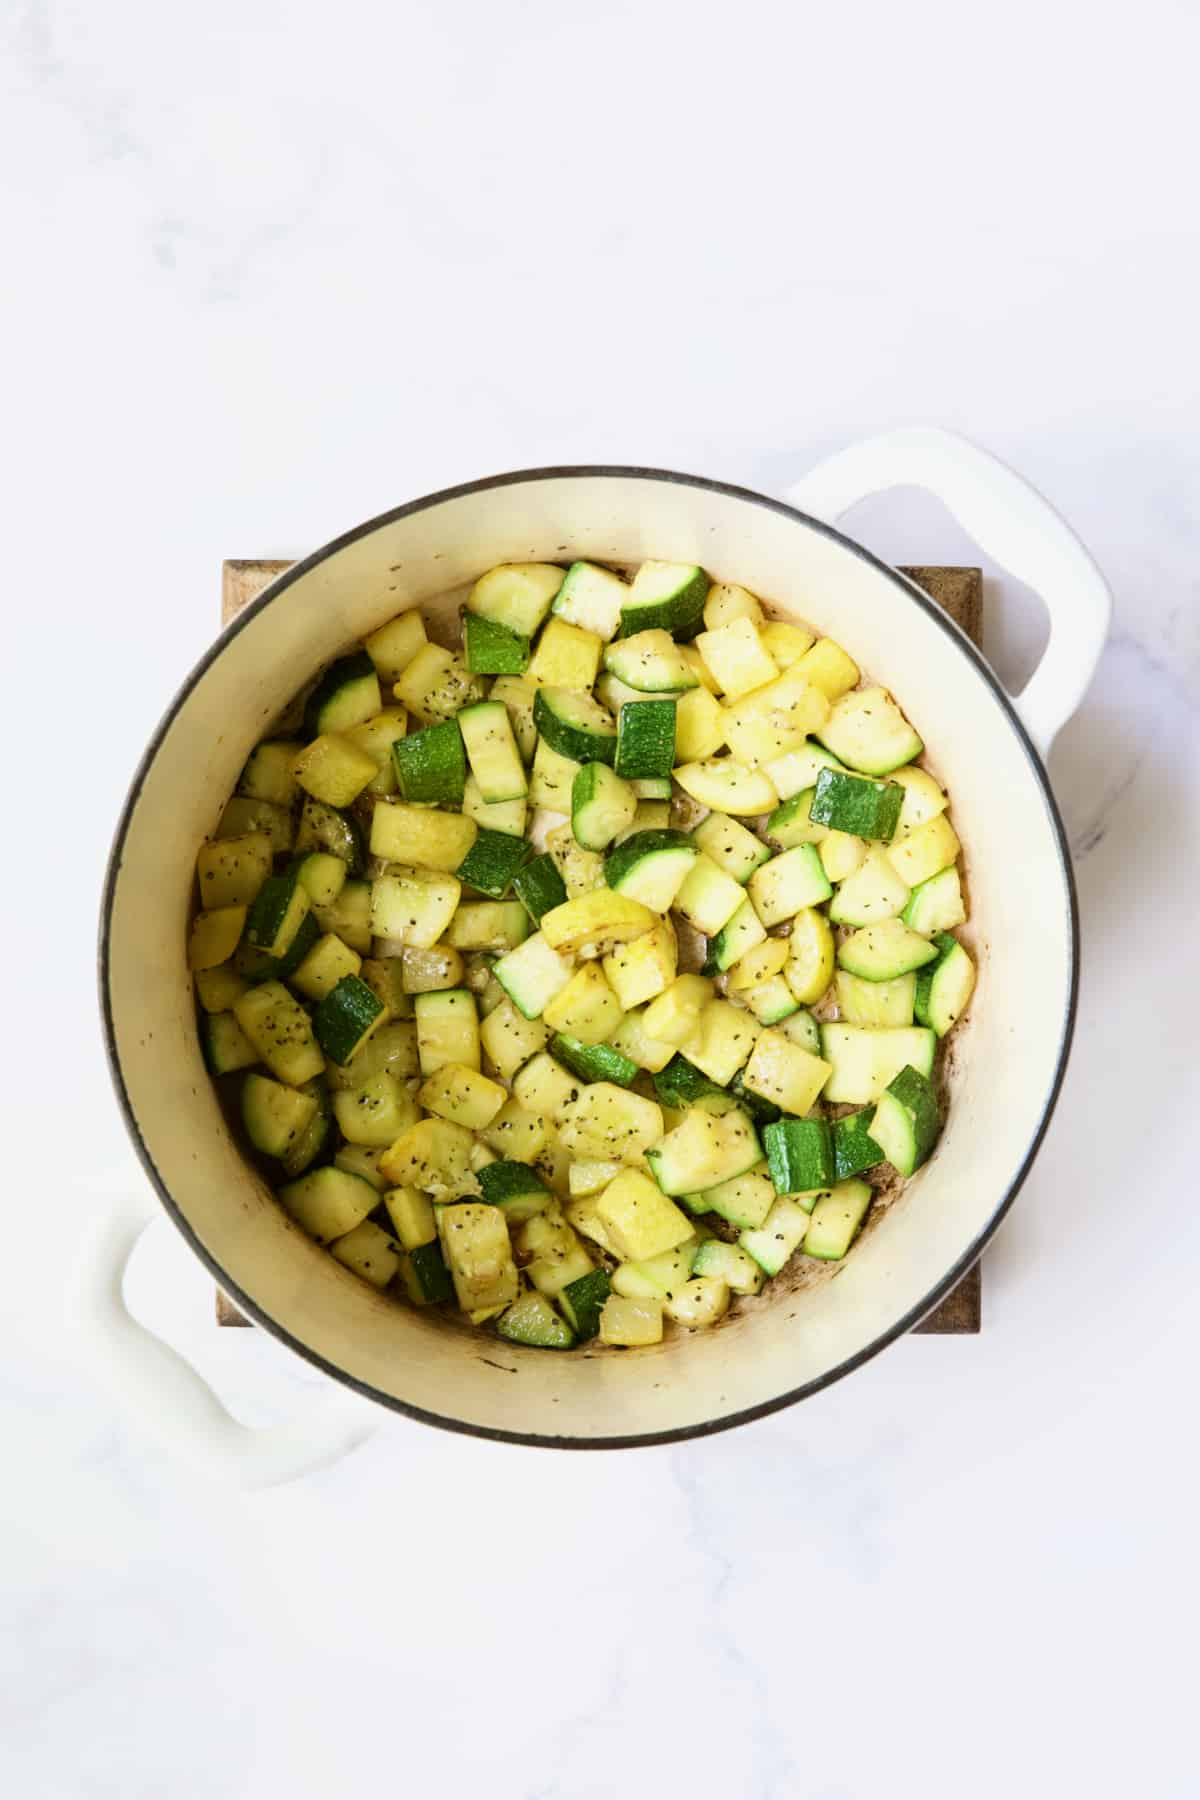 Process photo of zucchini and yellow squash being cooked in white Dutch oven.